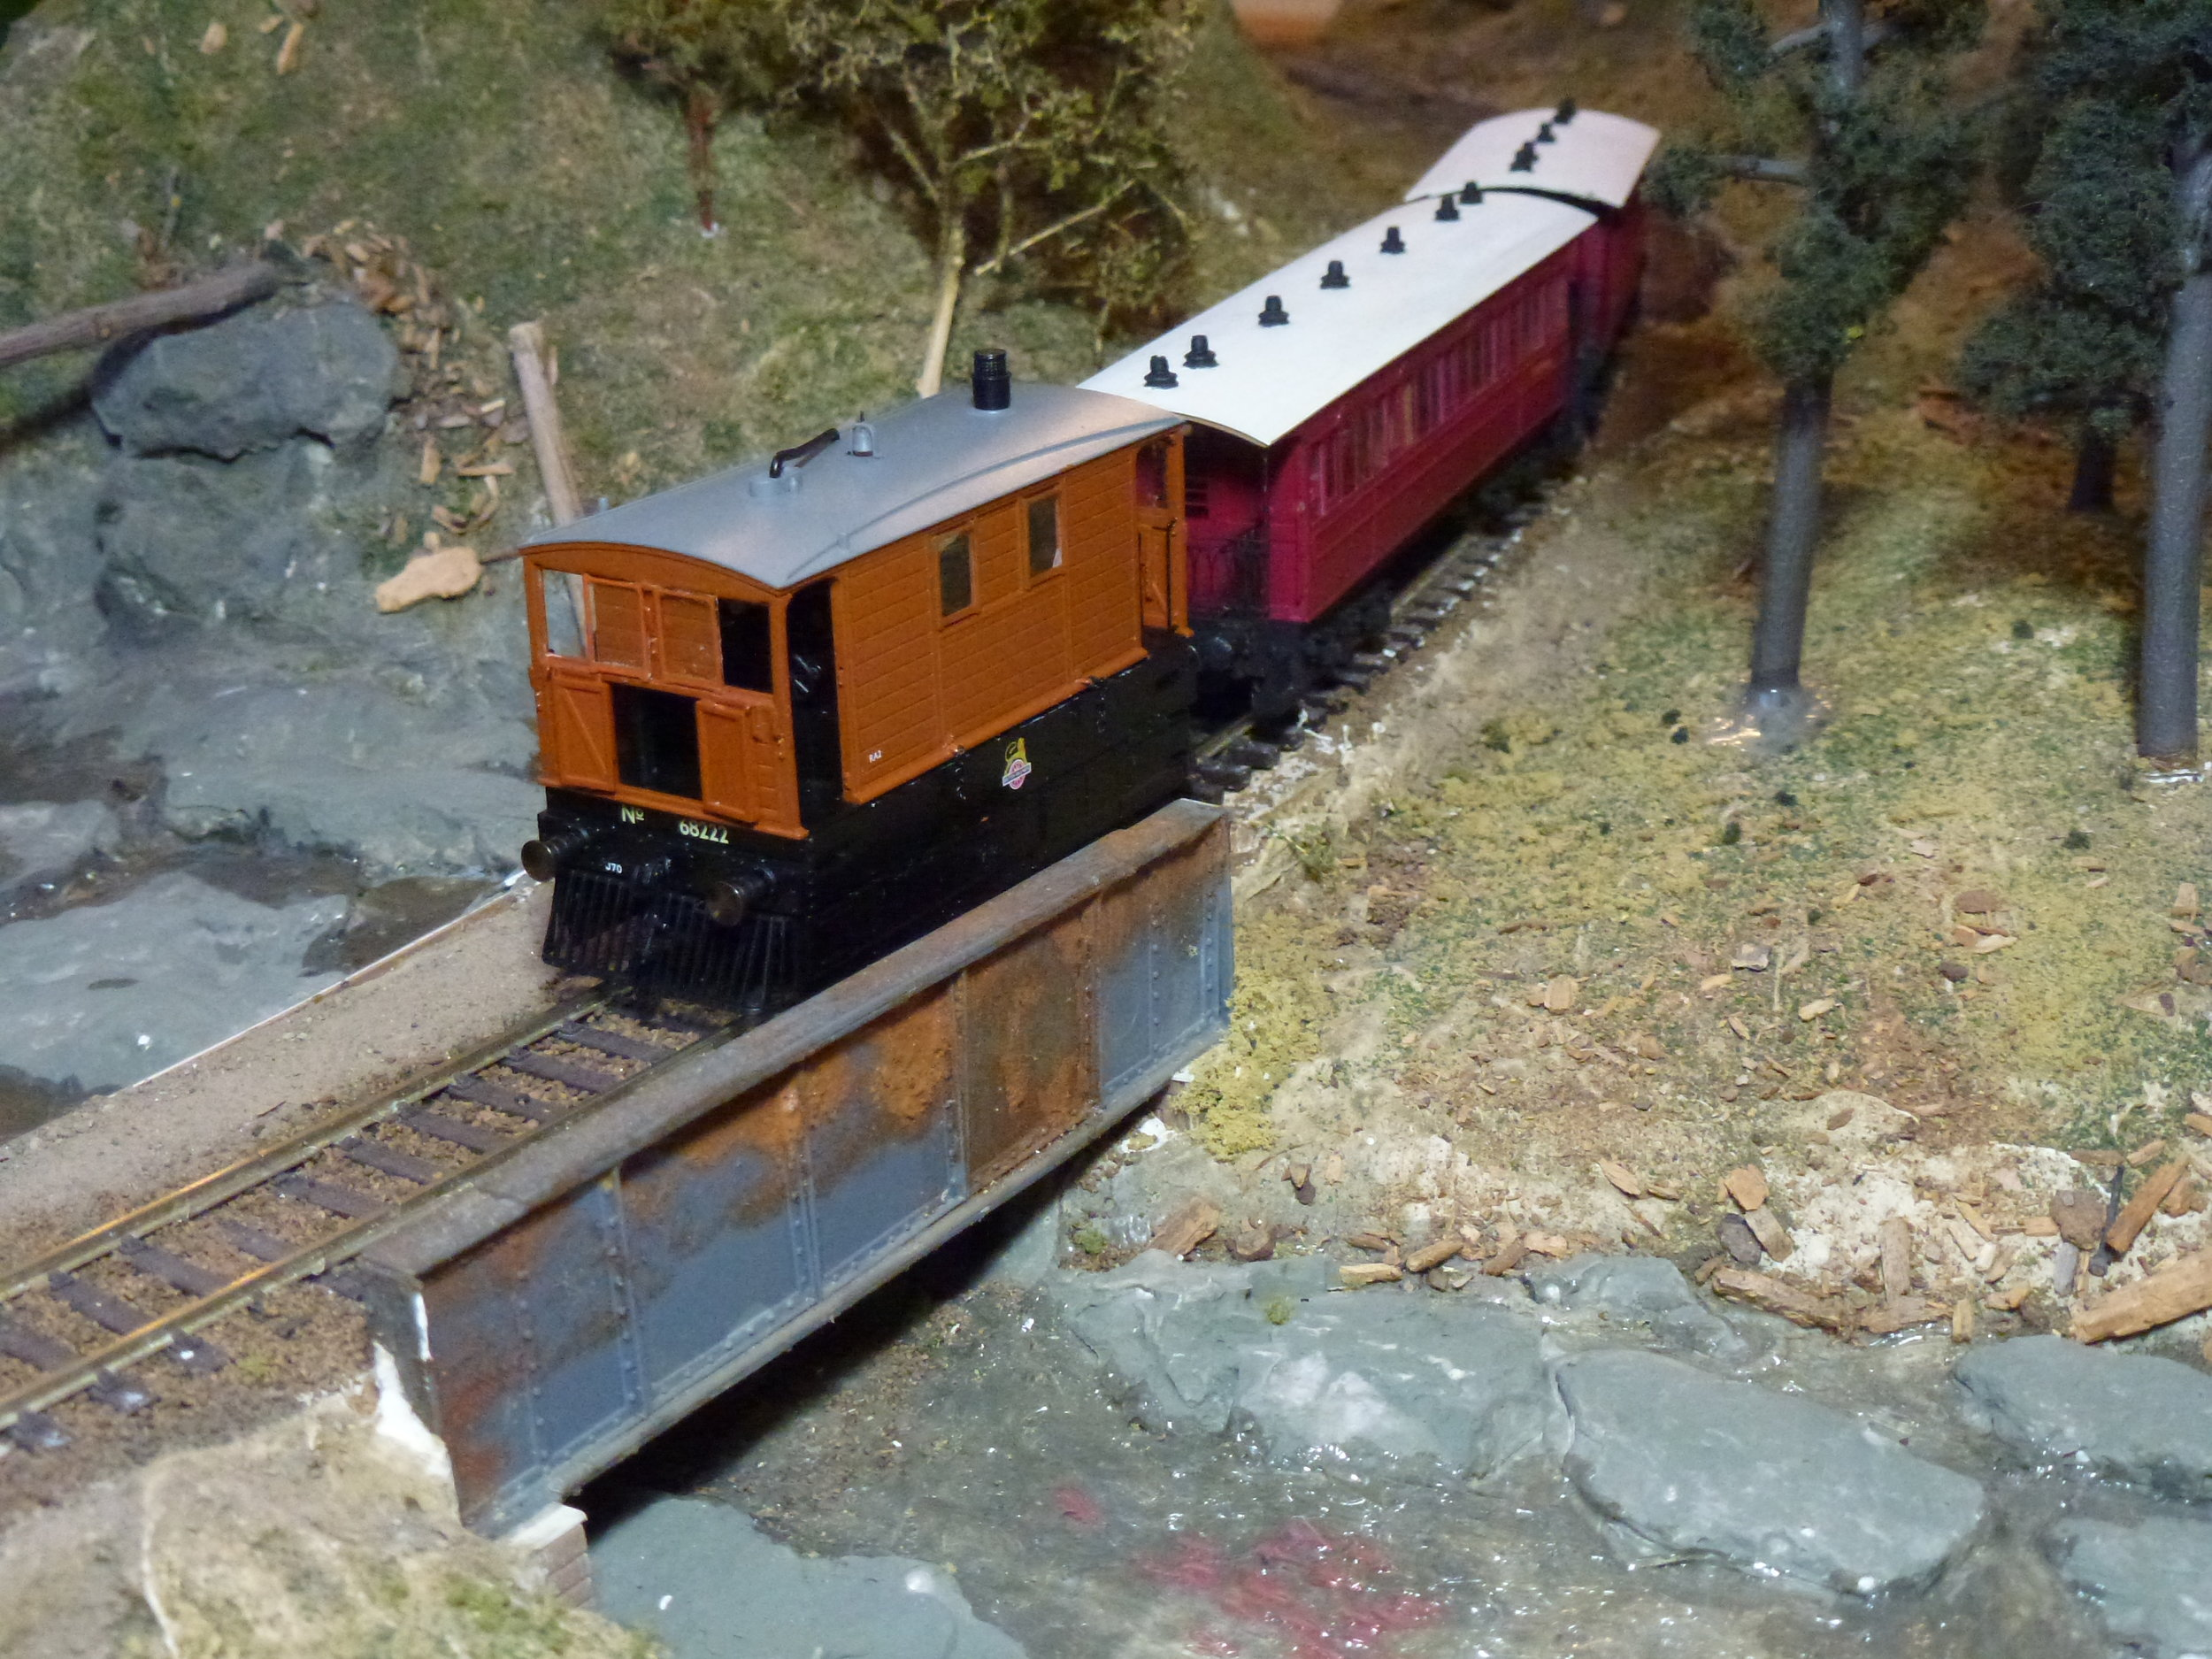 The Model Rail/Rapido Trains J70 with just some of the optional details fitted, posed with a pair of D&S Models coaches (no longer available).